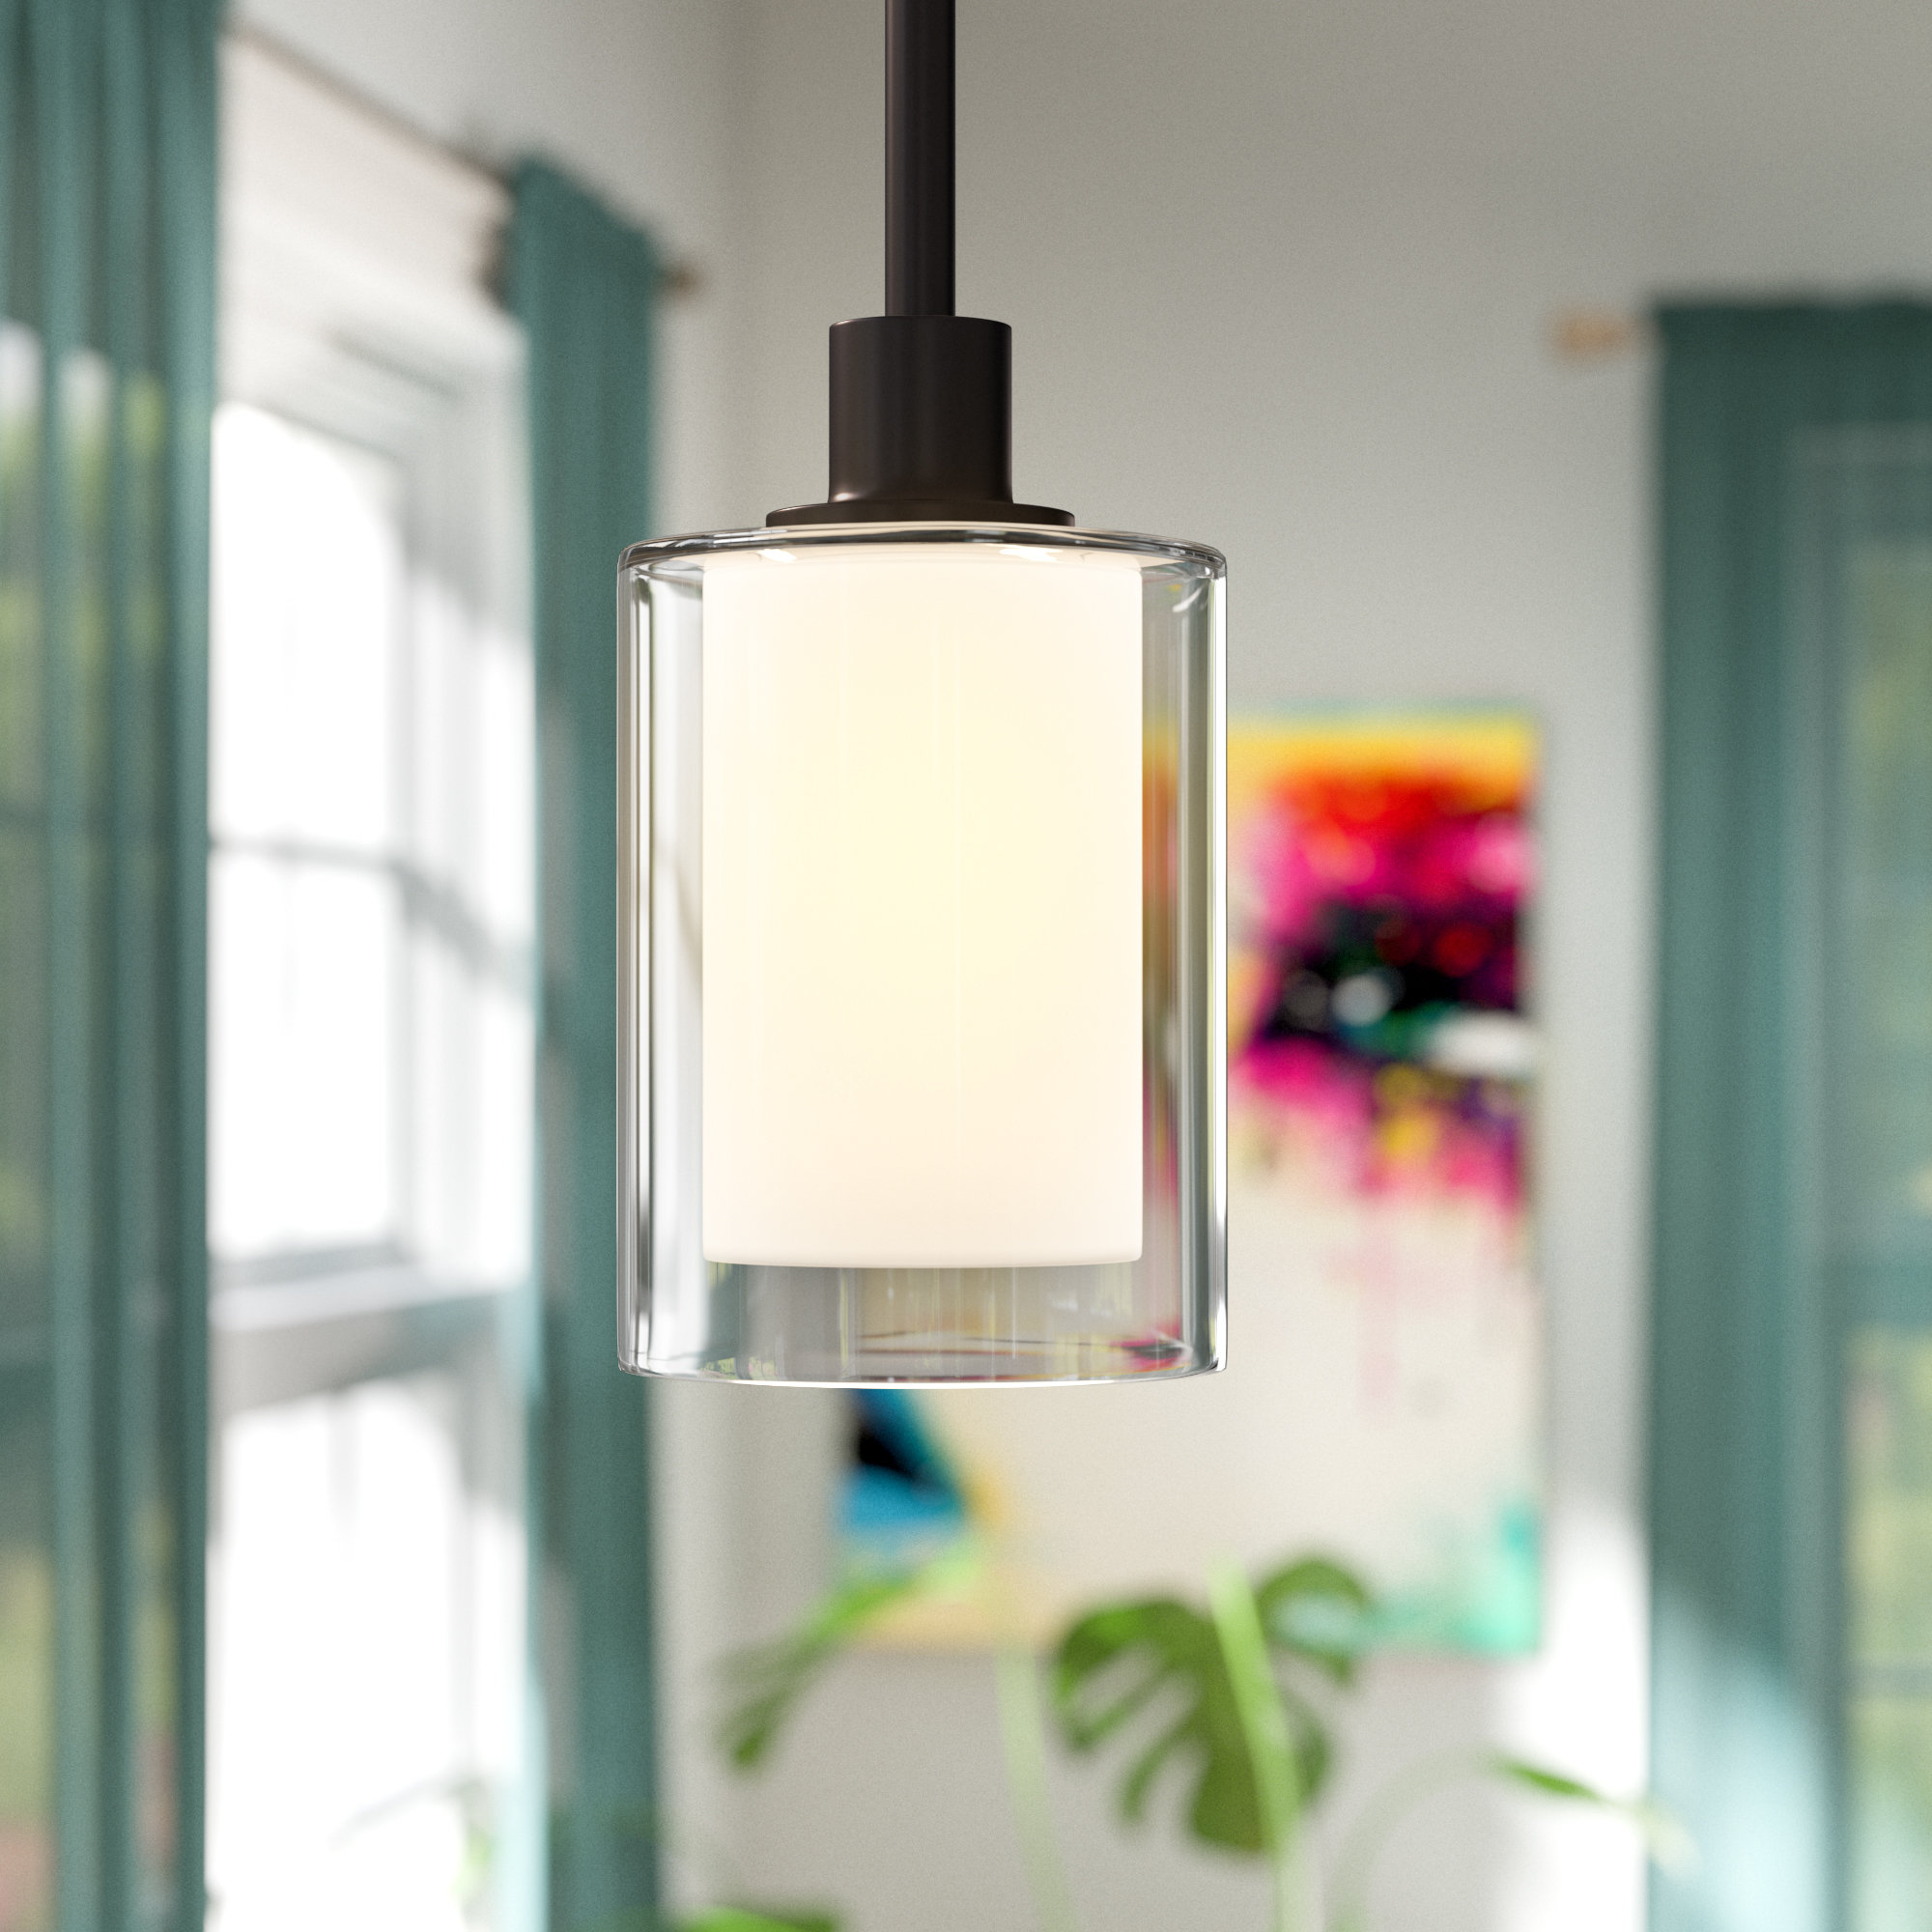 2019 Haverville 1 Light Single Cylinder Pendant With Angelina 1 Light Single Cylinder Pendants (View 2 of 20)